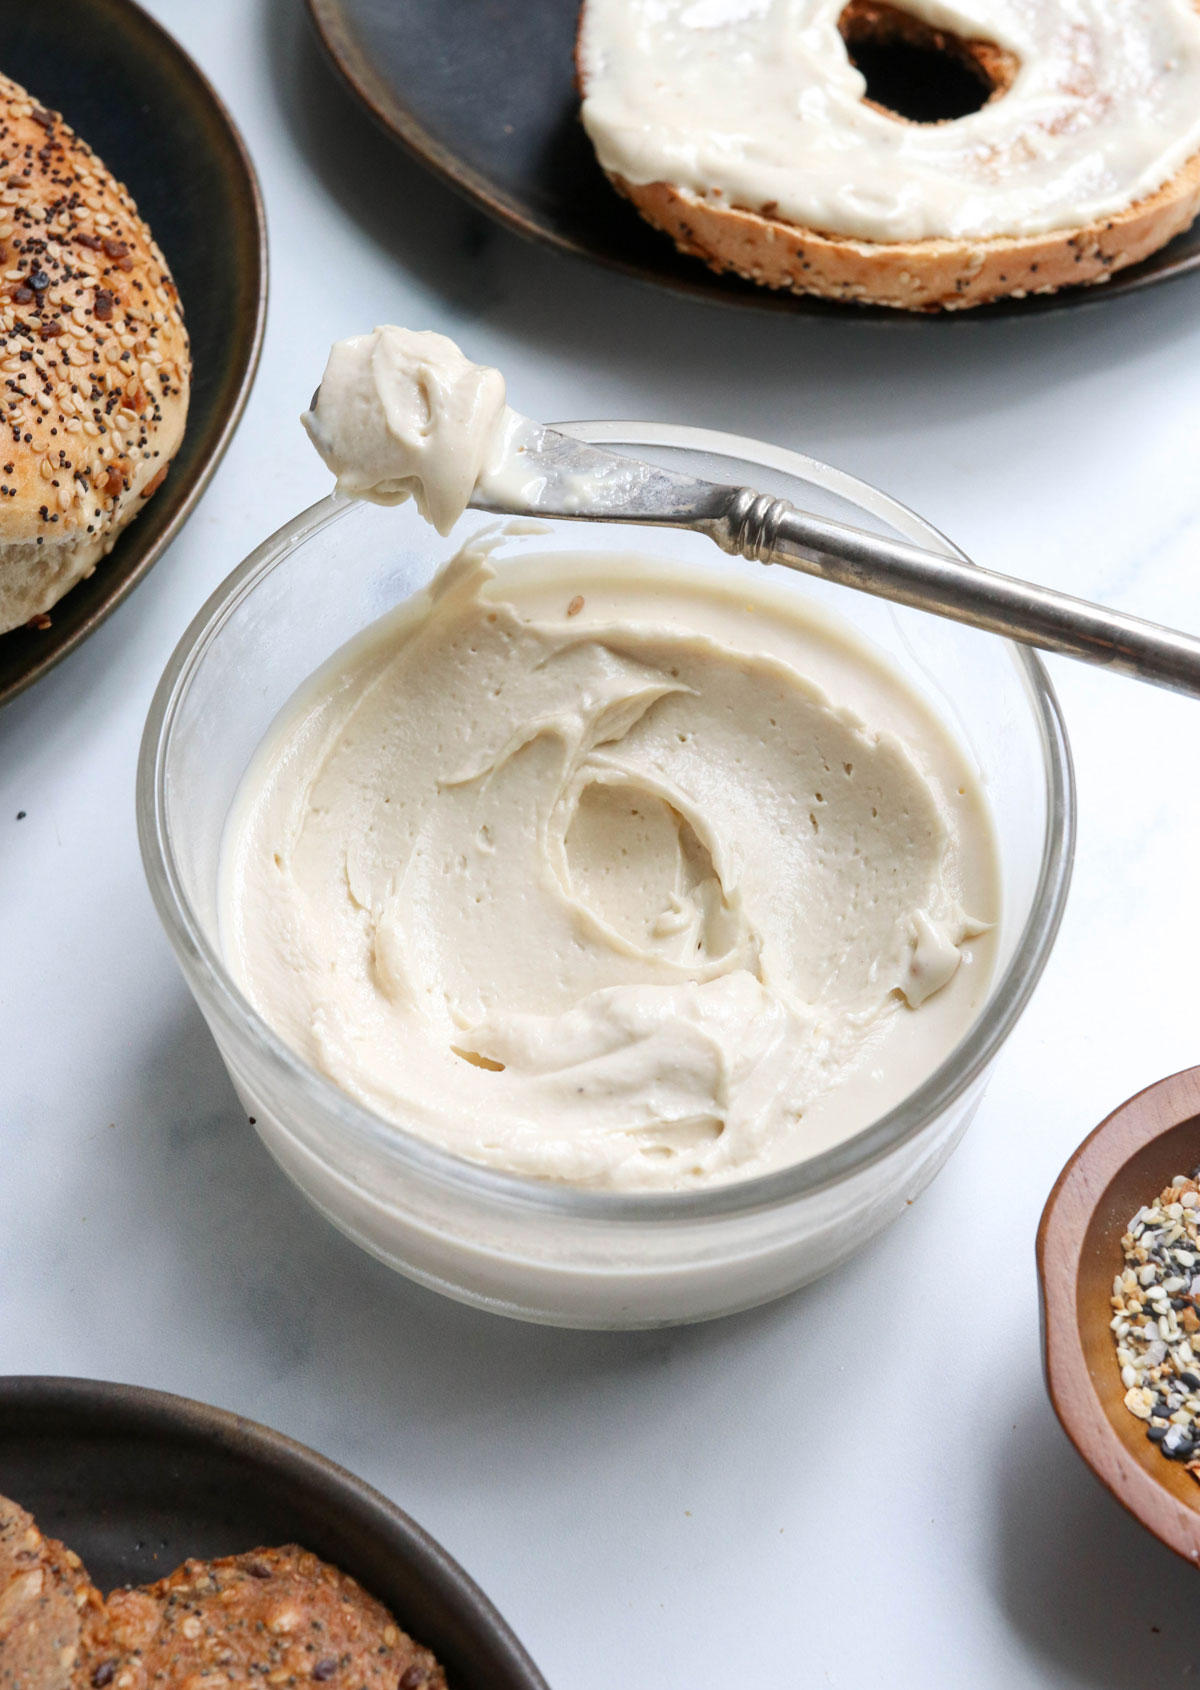 vegan cream cheese with knife on the container